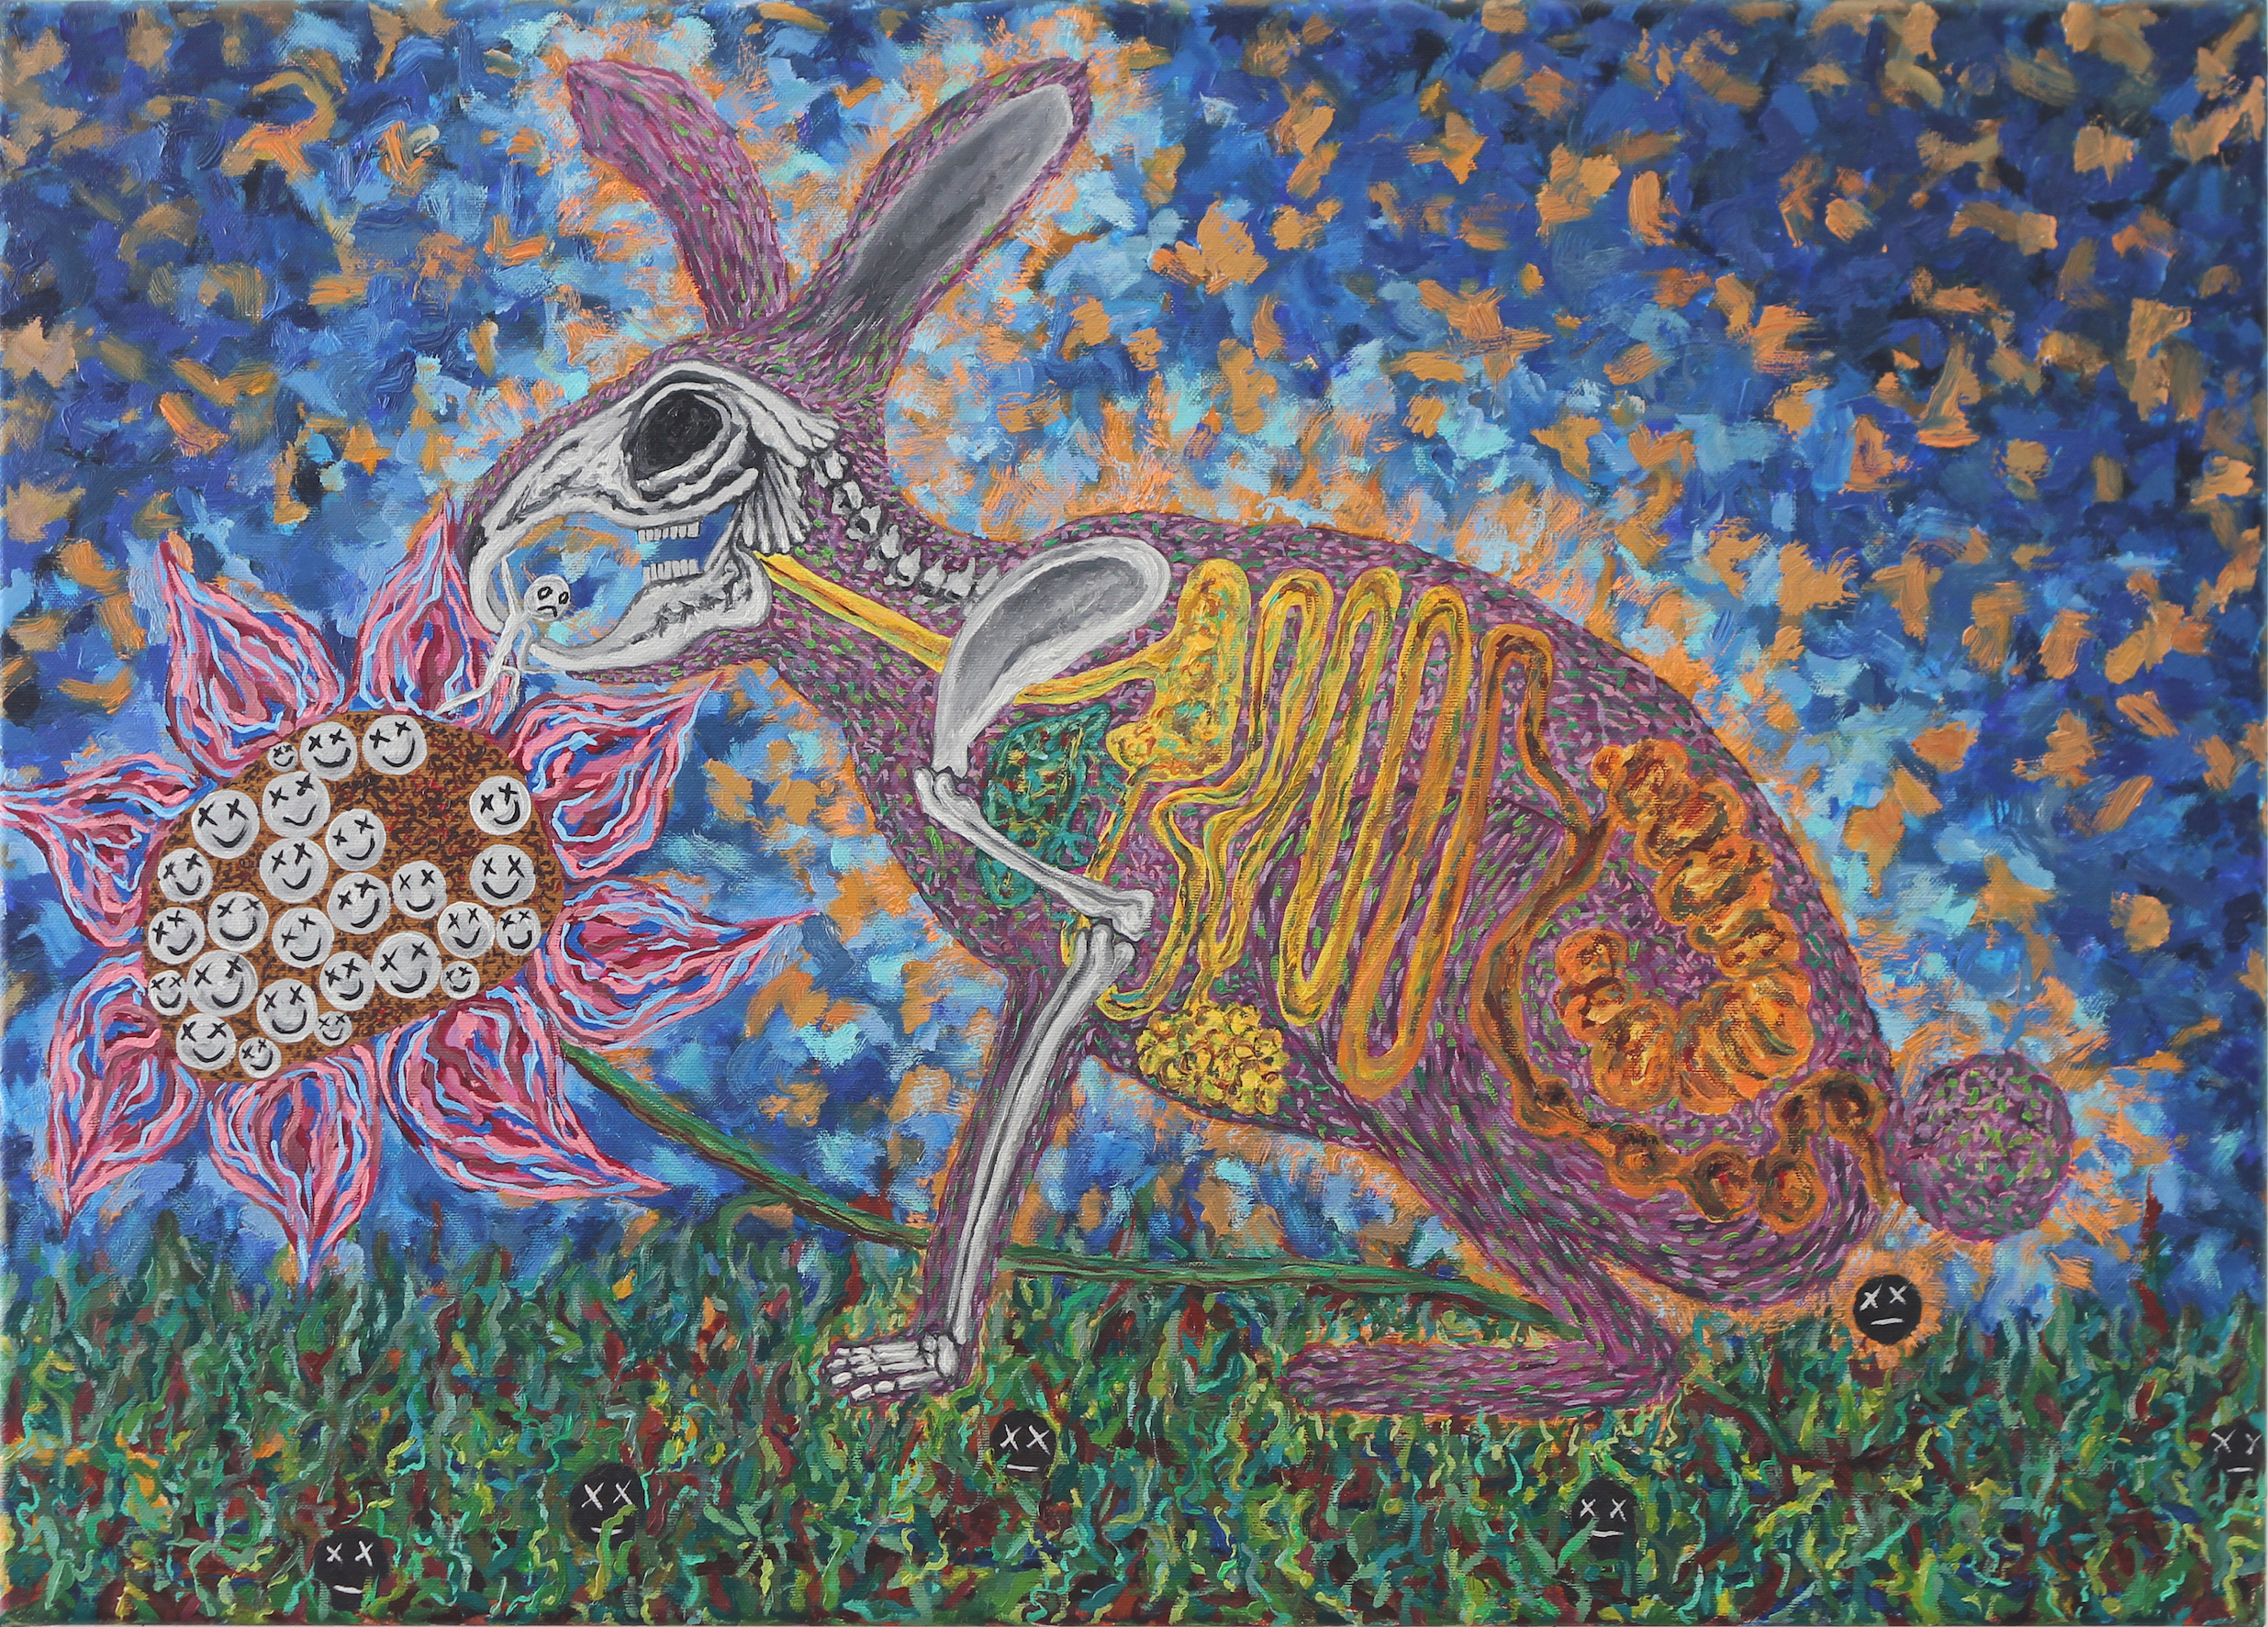 Rabbit Eats Being 2, painting by Yagama